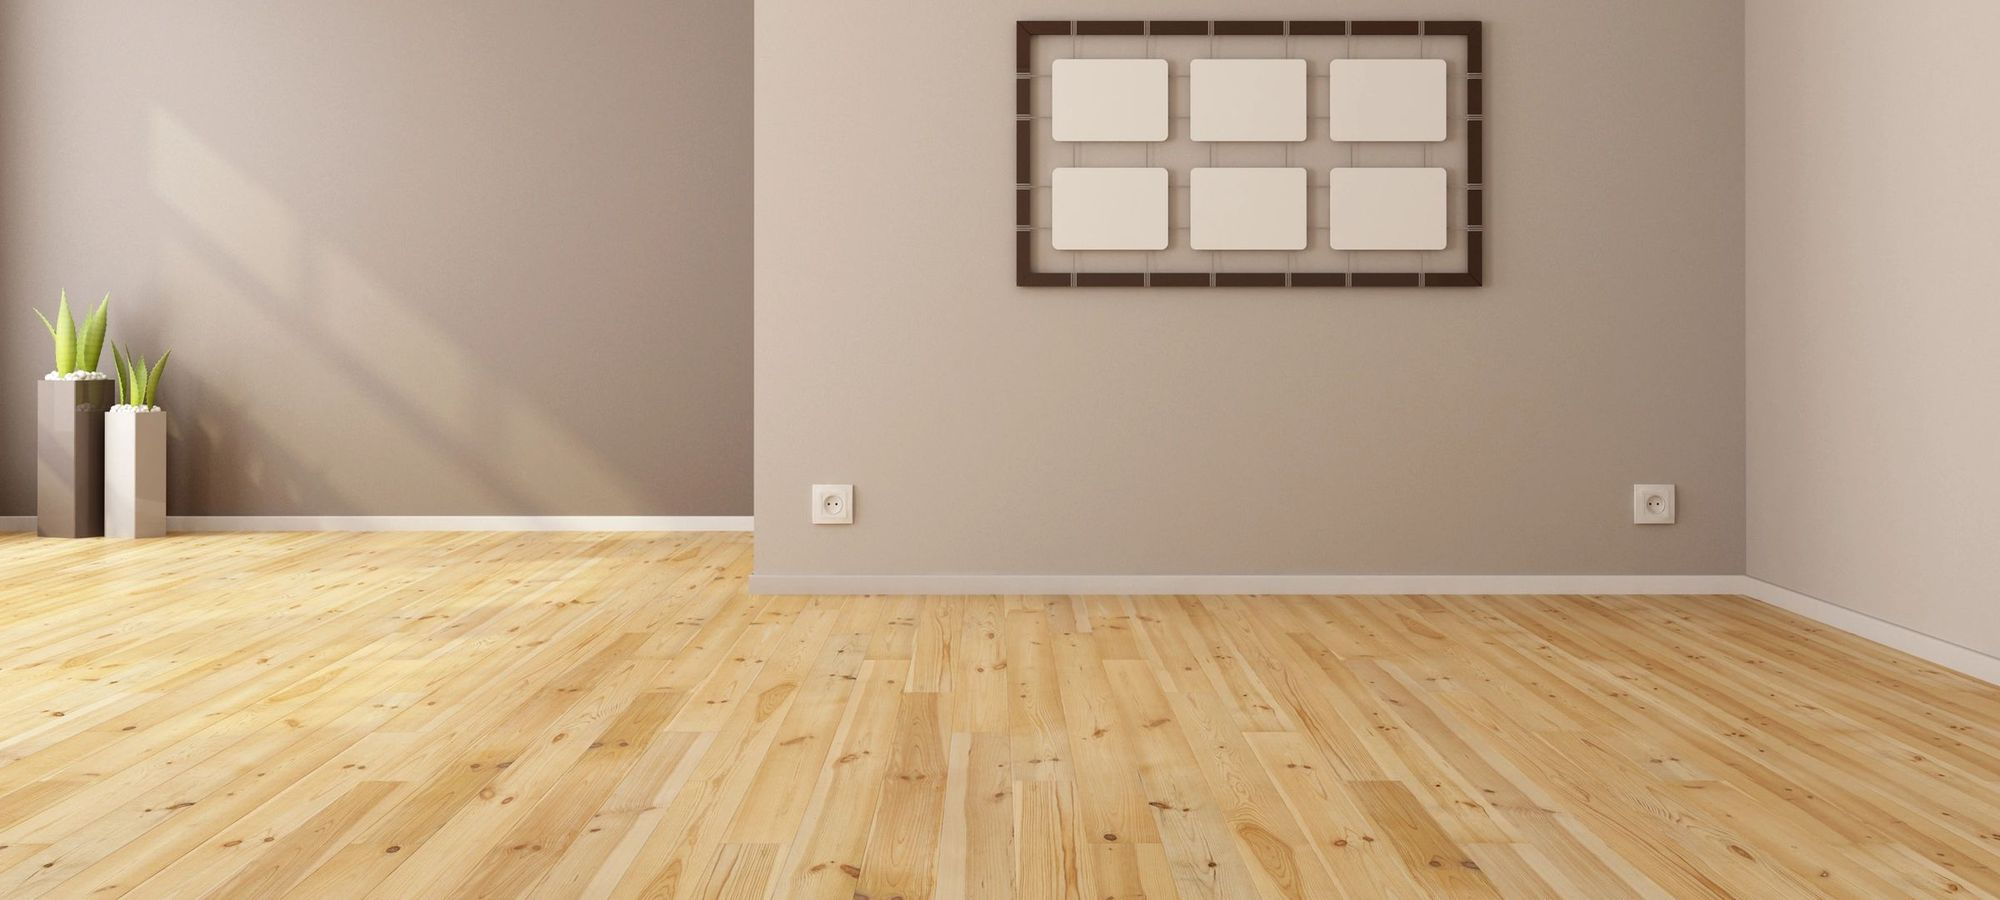 pine flooring gallery image; bedroom image; gallery light pine image ... VVFIXGG